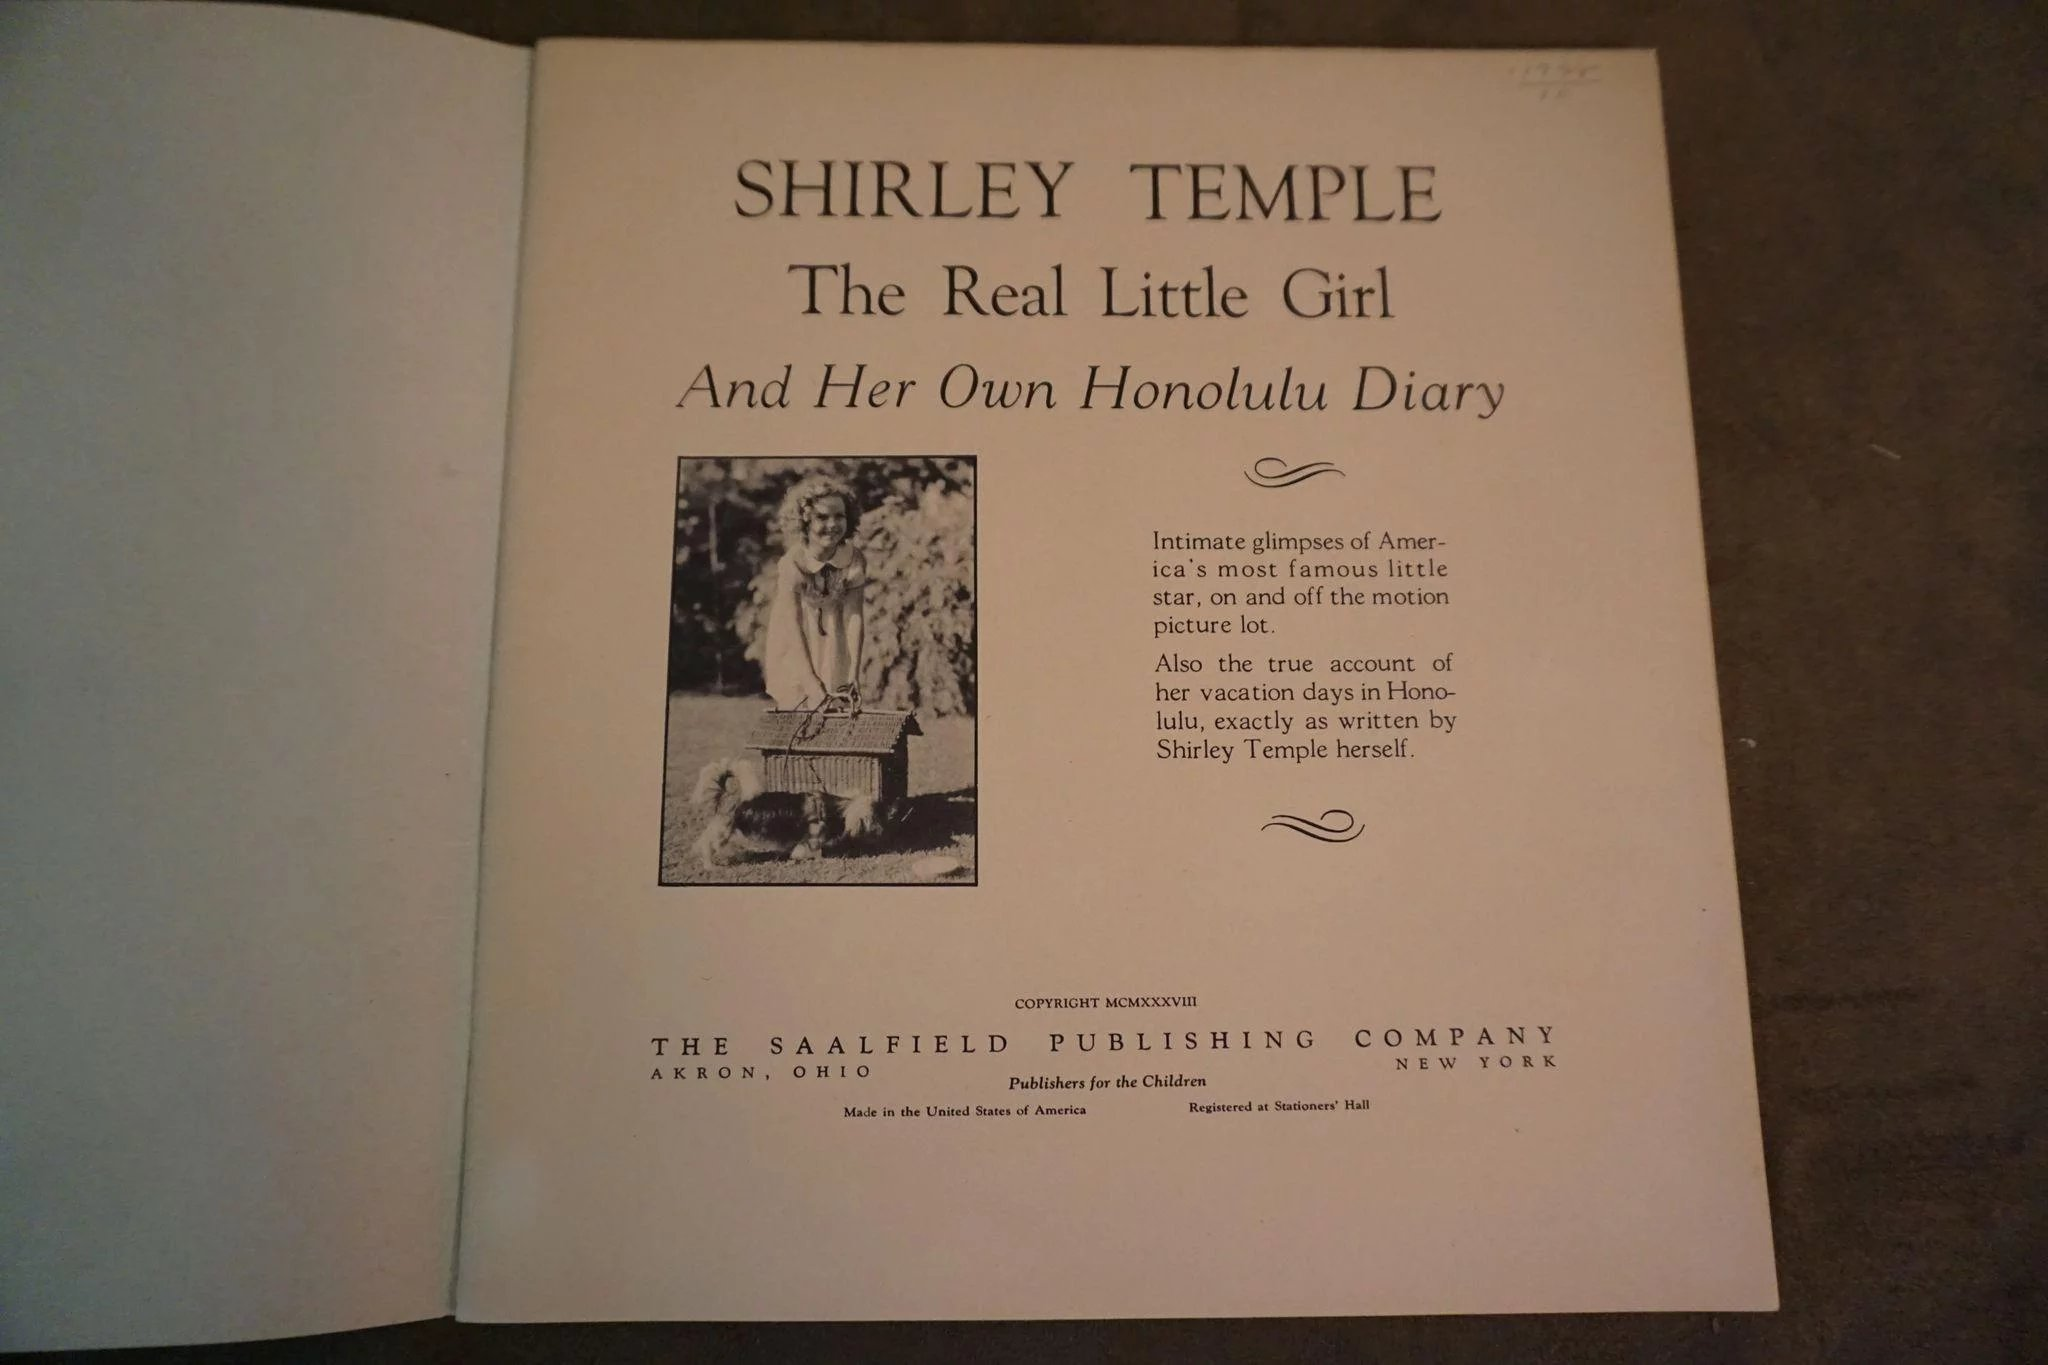 1938 Shirley Temple The Real Little Girl and Her Own Honolulu Diary Book.  Click to expand